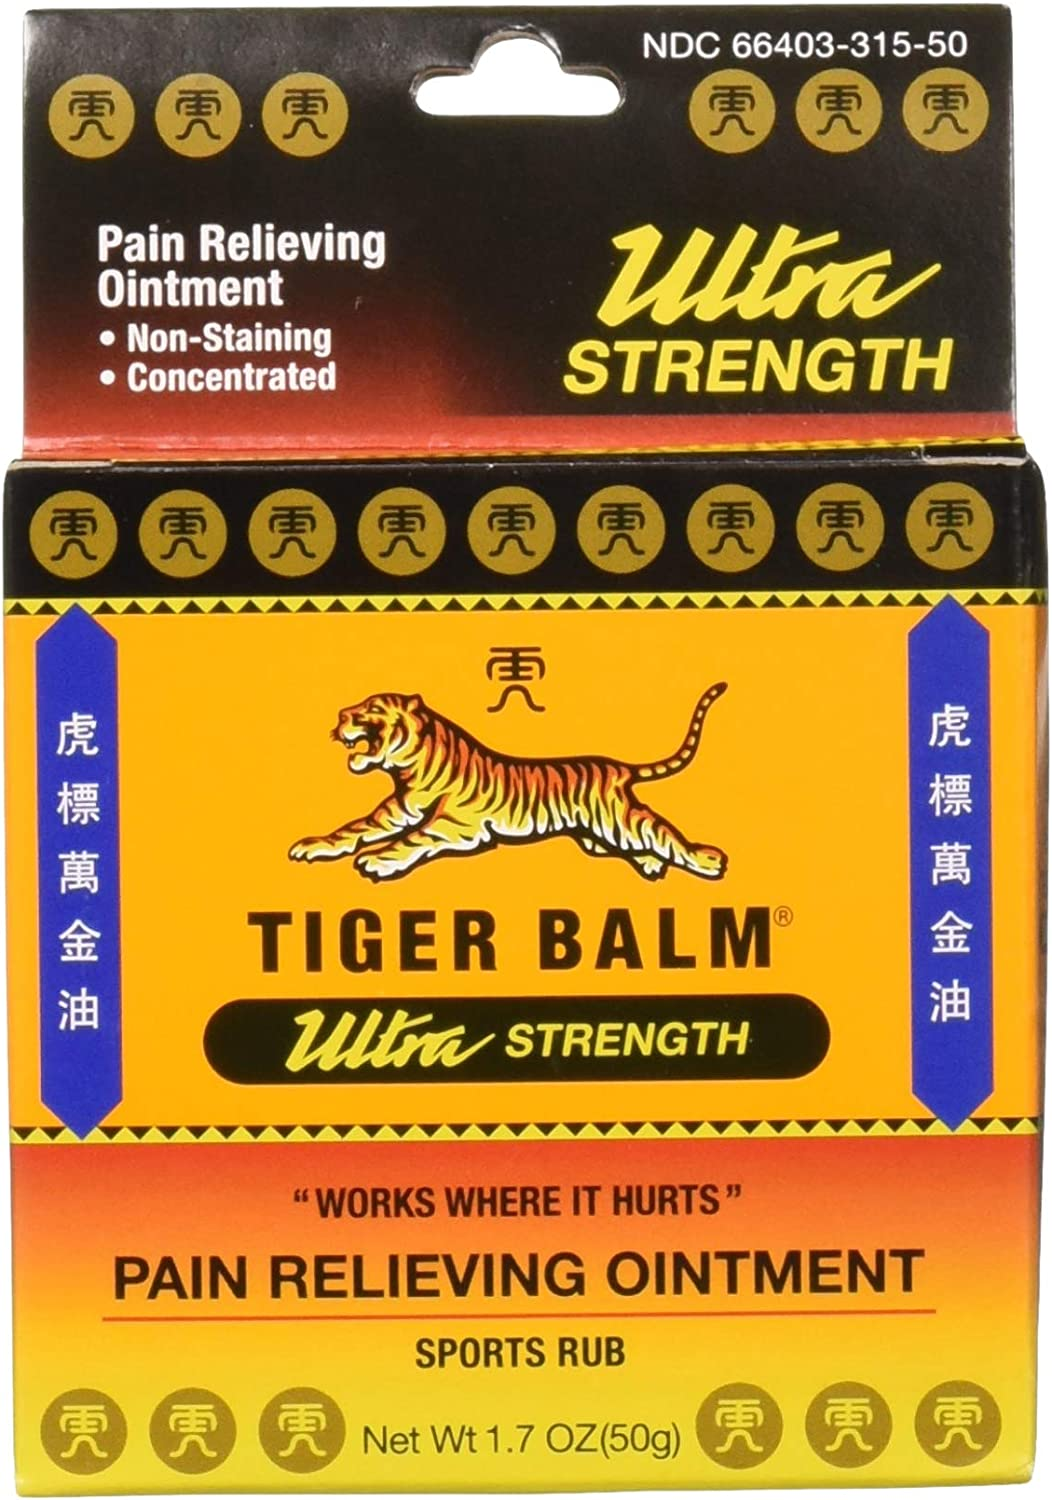 Tiger Balm Sport Rub Pain Relieving Ointment, Ultra Strength 1.7